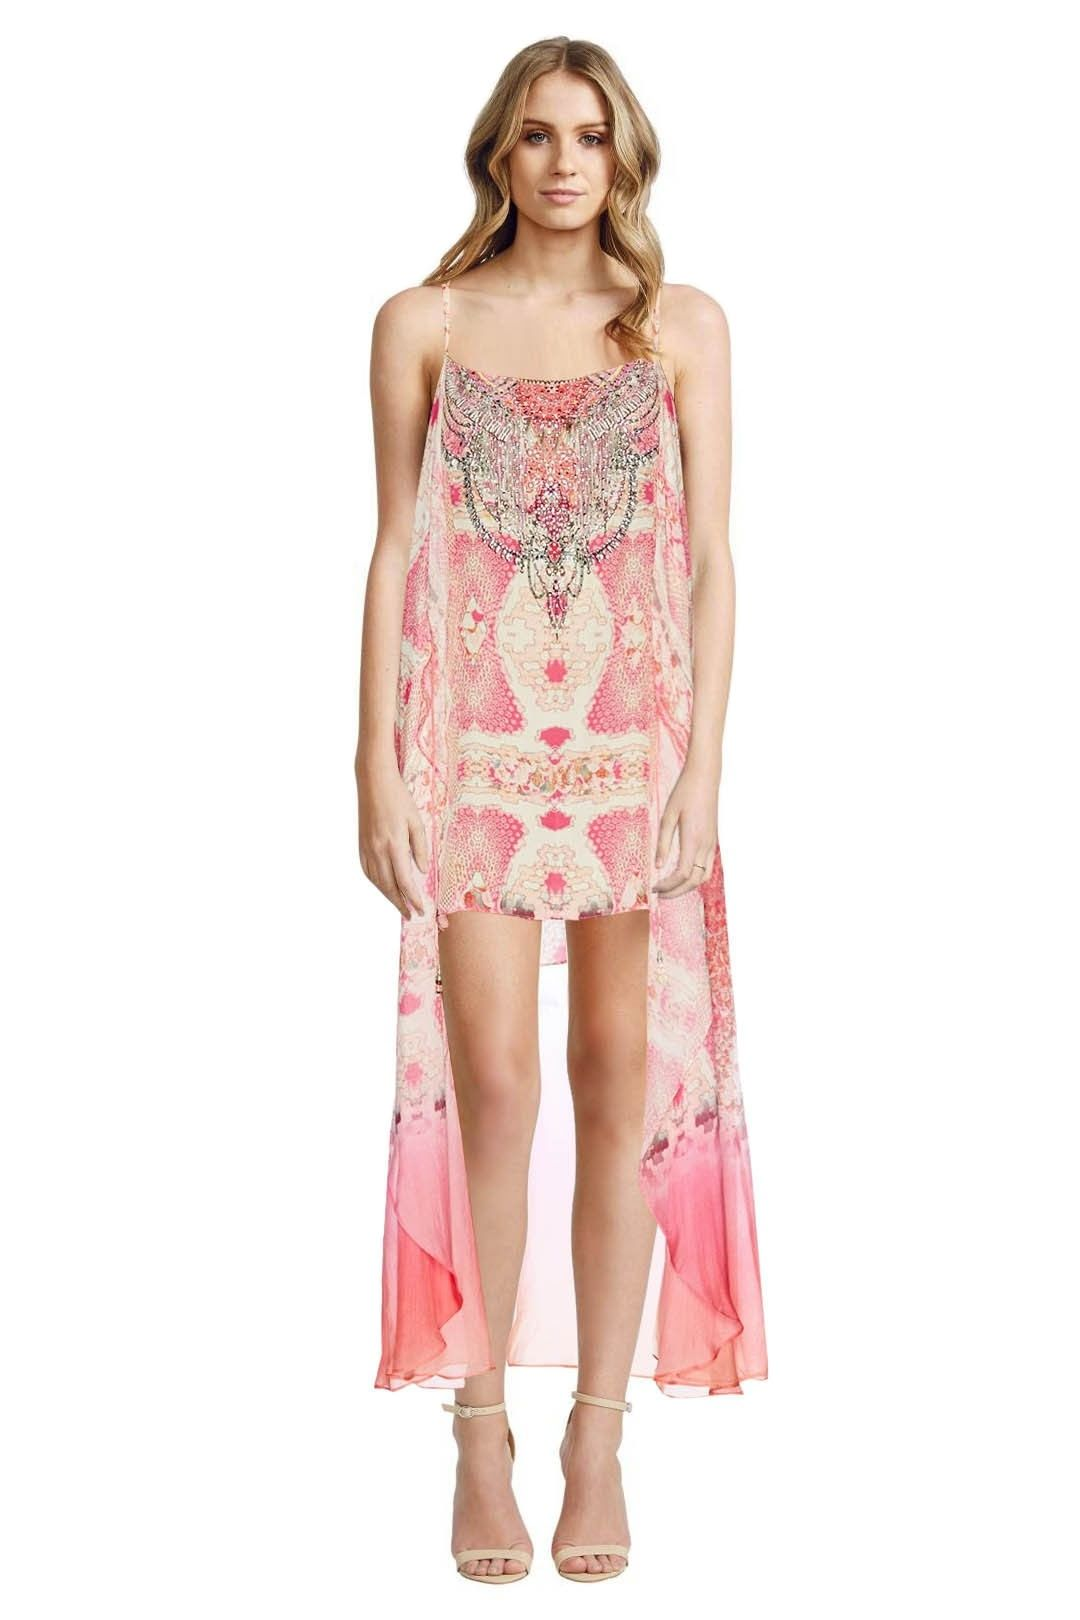 Camilla - Sea Serpent Mini Dress with Long Overlay - Prints - Front